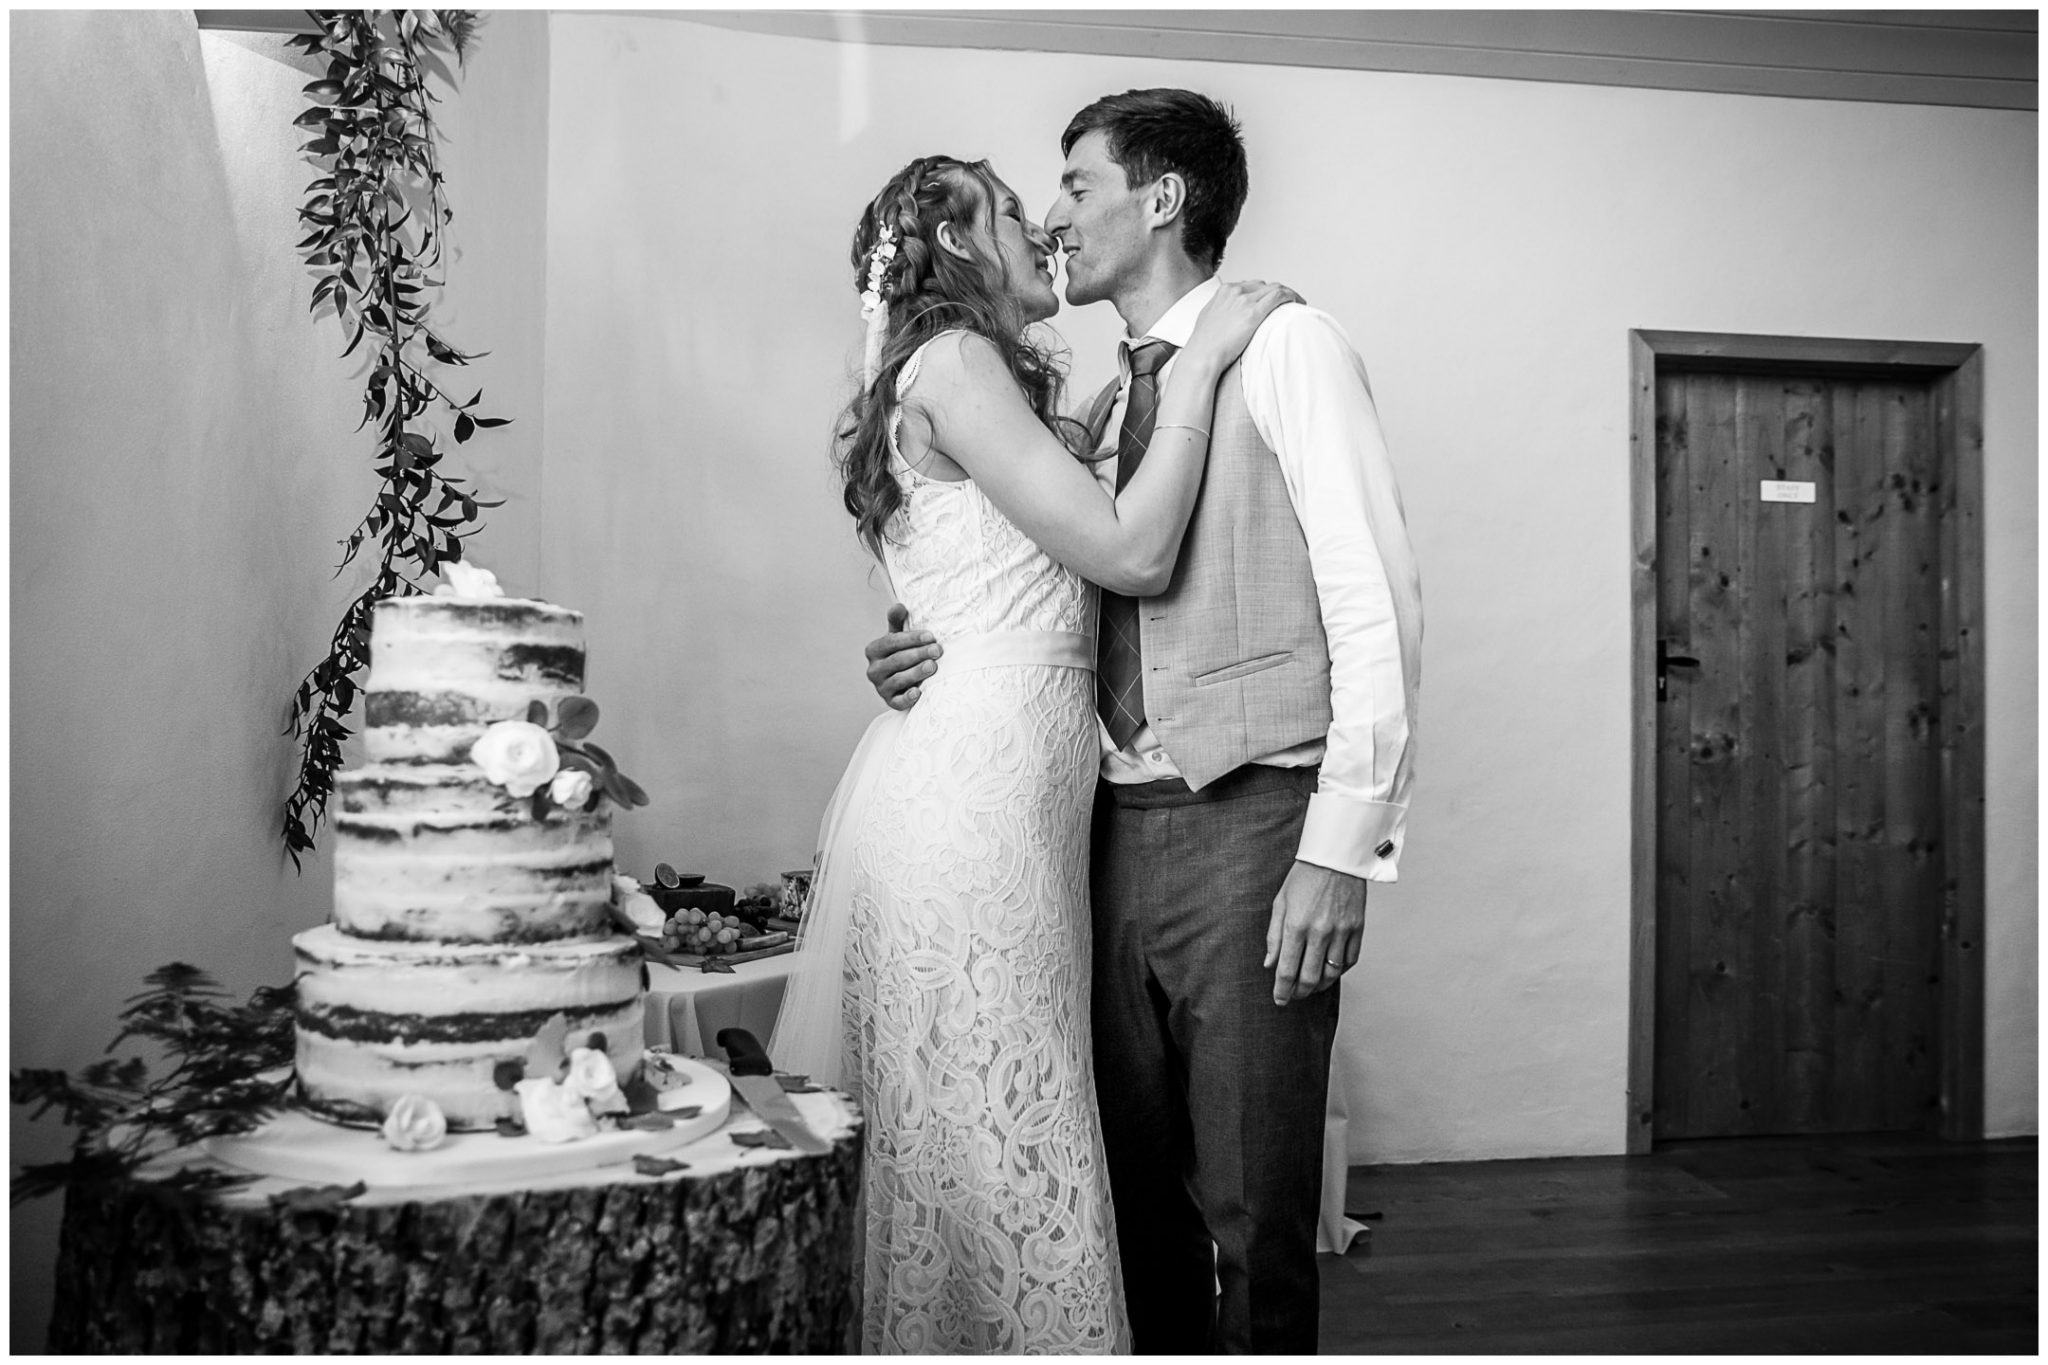 The couple kiss during the cutting of the cake